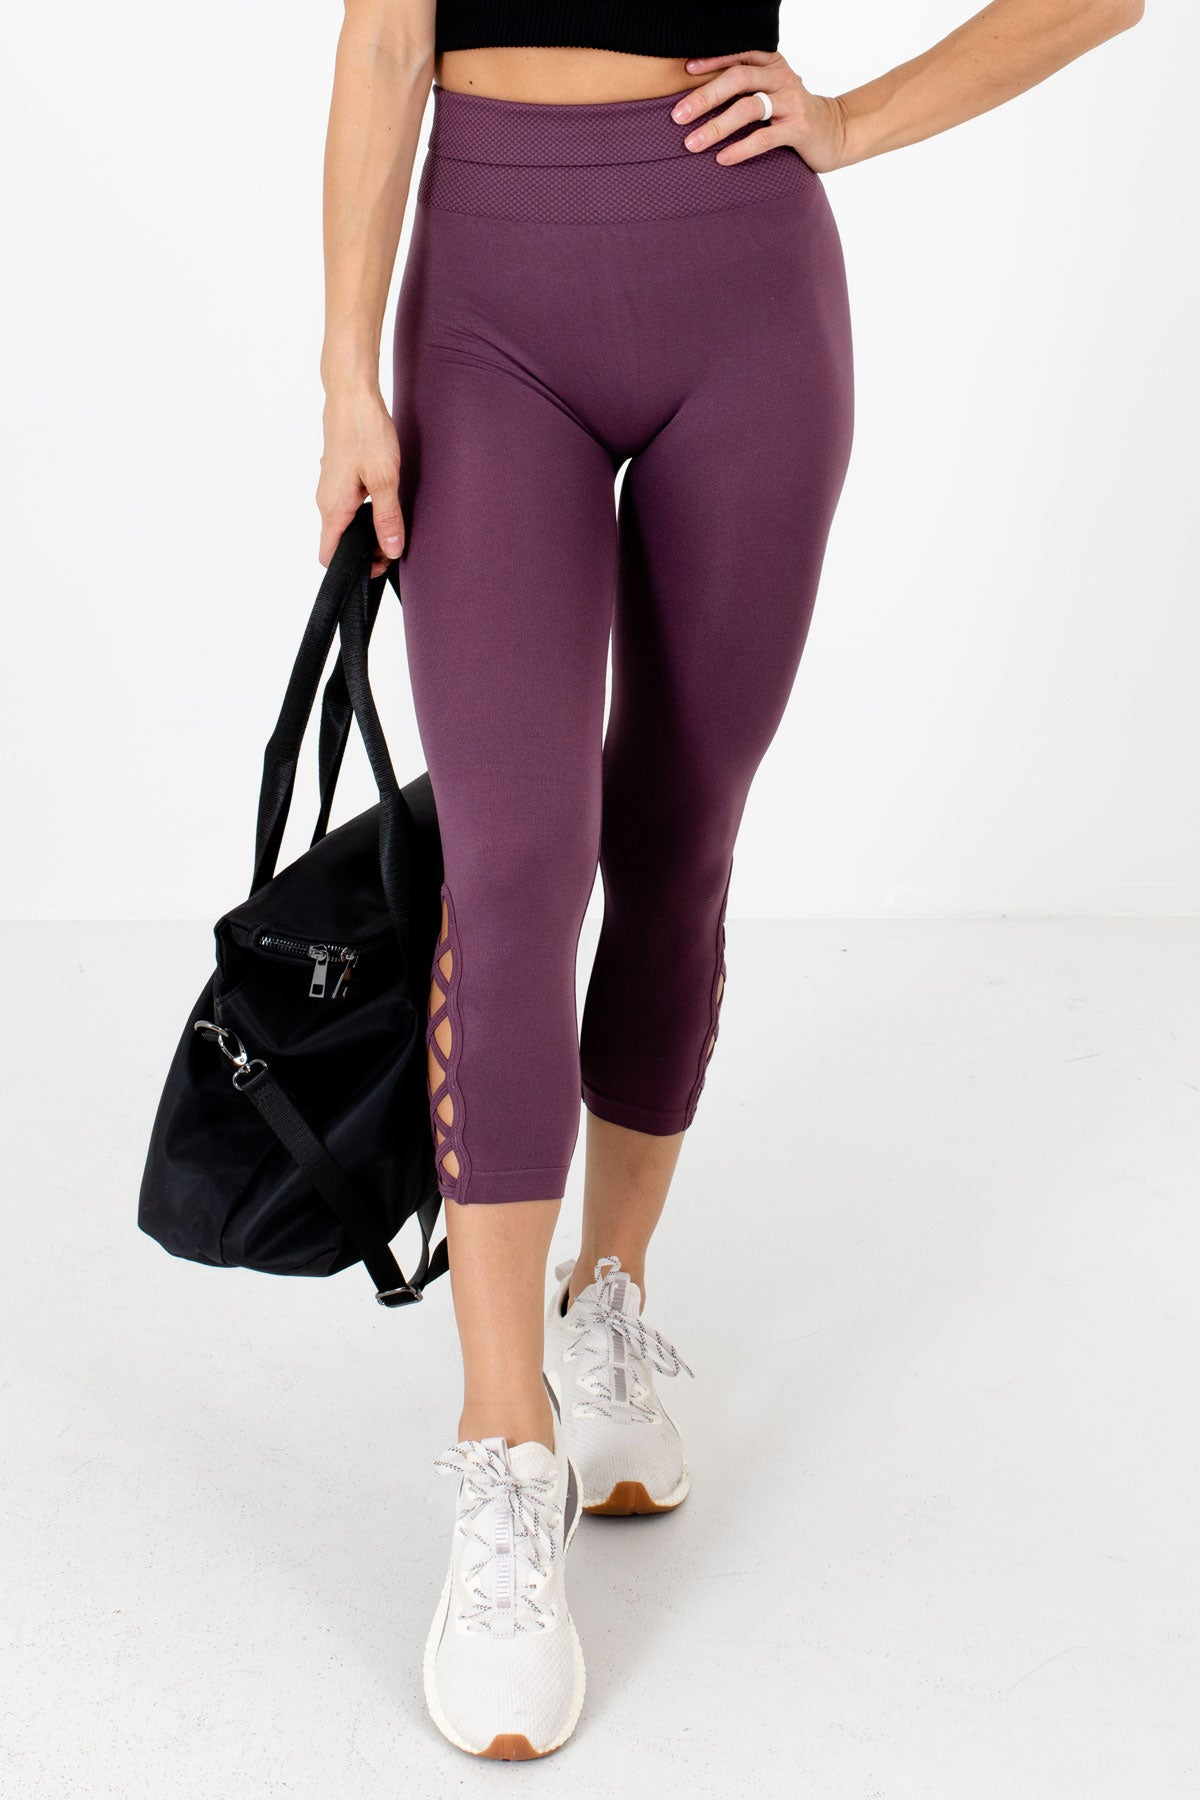 Purple High Waisted Style Boutique Active Leggings for Women